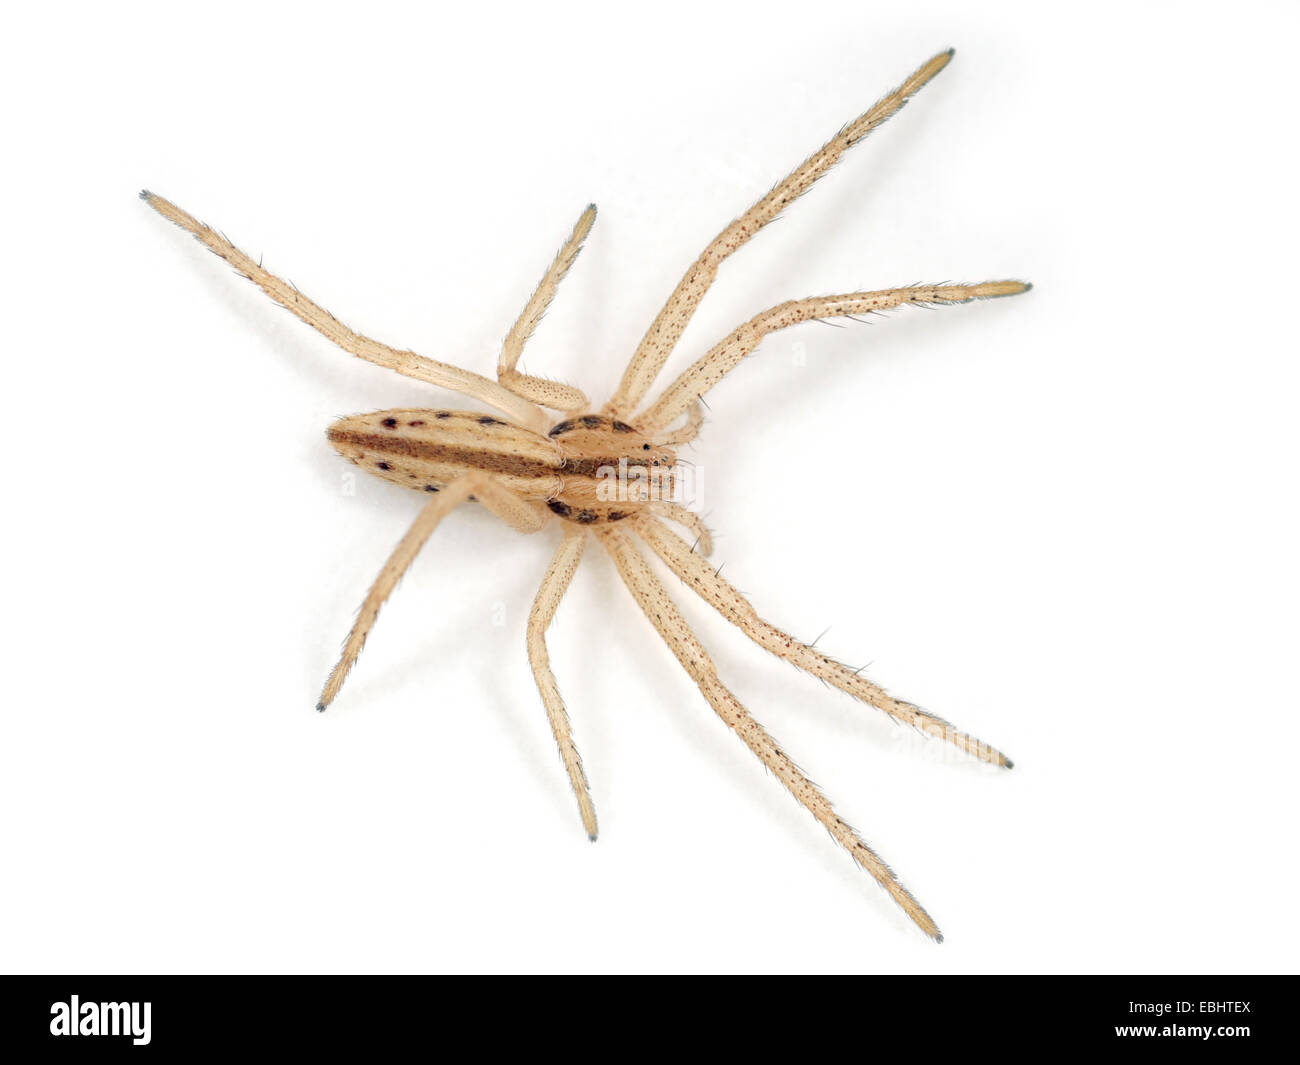 A Slender Crab spider (Tibellus sp) on a white background. Part of the Family Philodromidae,  Running crab spiders. - Stock Image